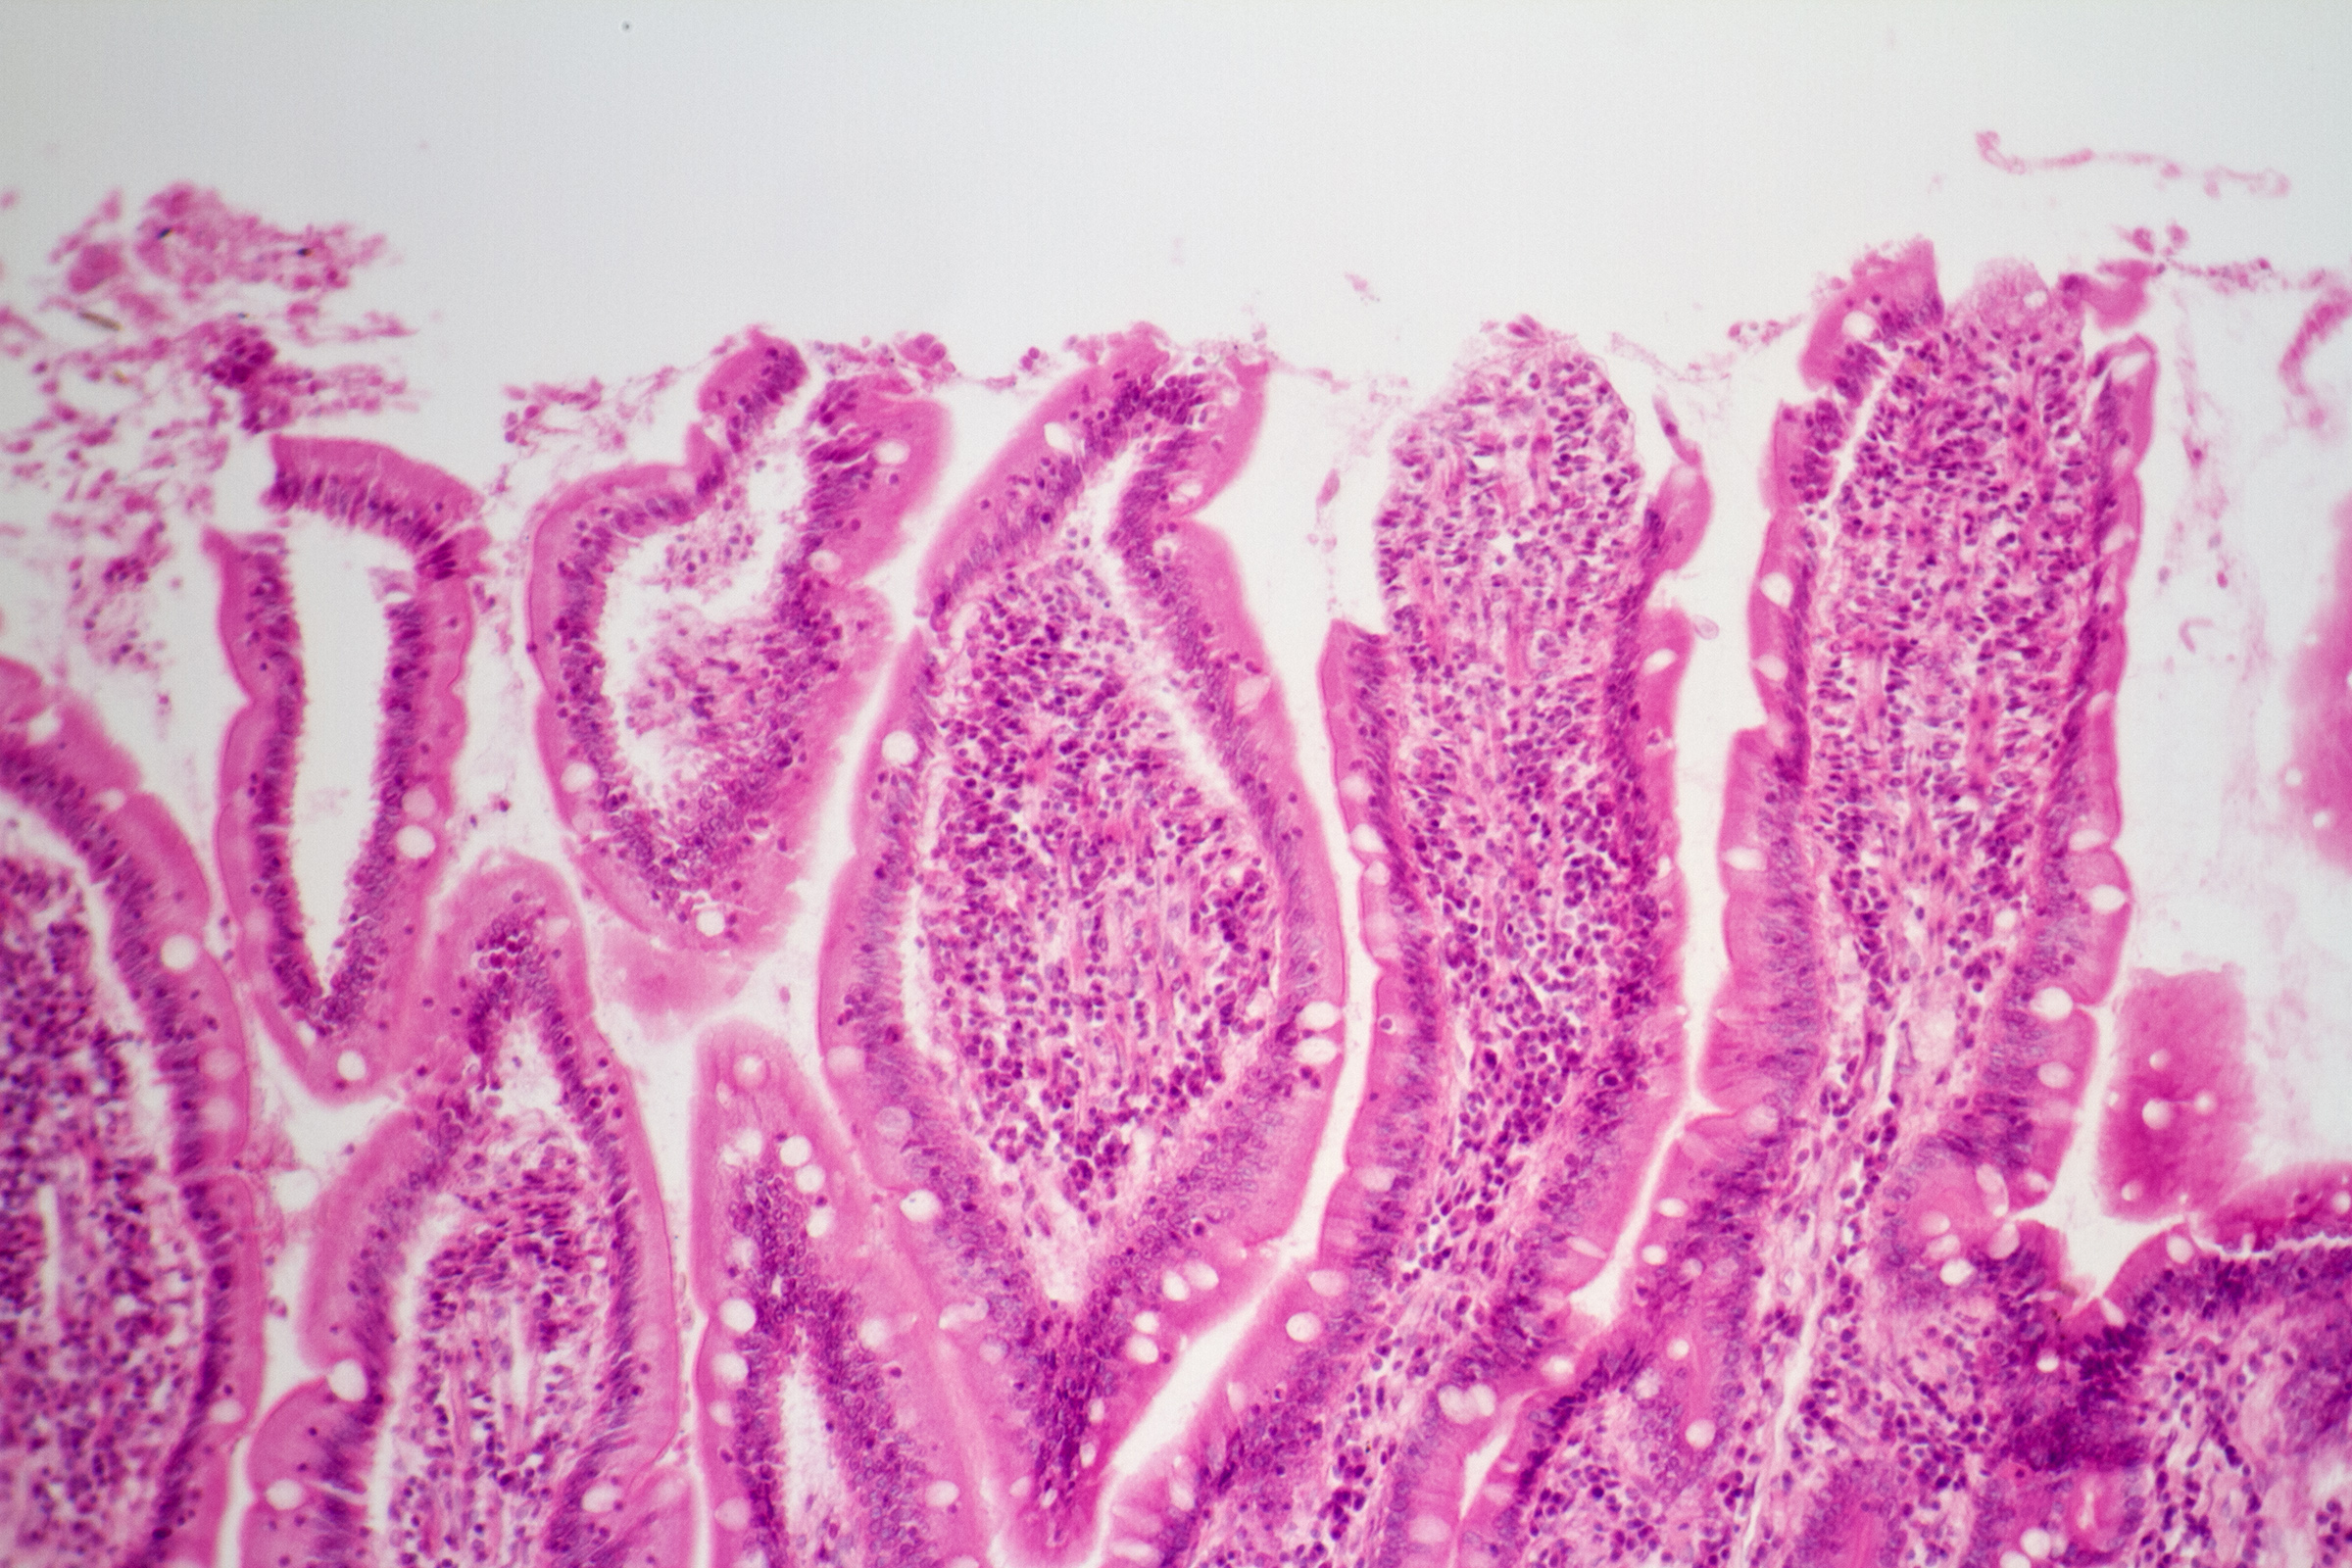 Skin cells, Anatomical, Microscope, Old, Organ, HQ Photo